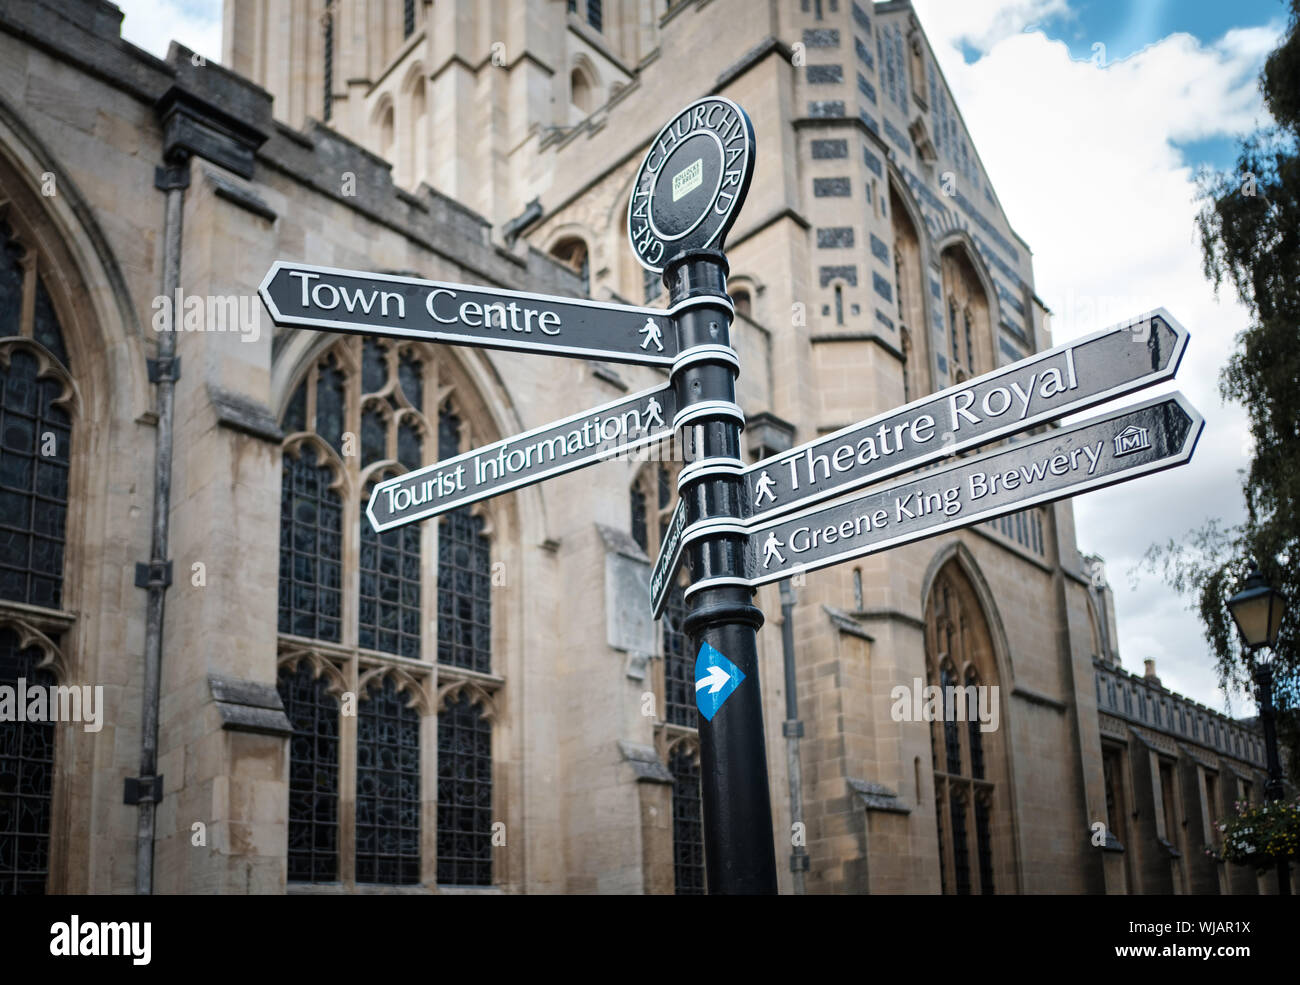 Signpost for Theatre Royal and Greene King Brewery in front of St Edmundsbury Cathedral, Bury St Edmunds, Suffolk, UK Stock Photo